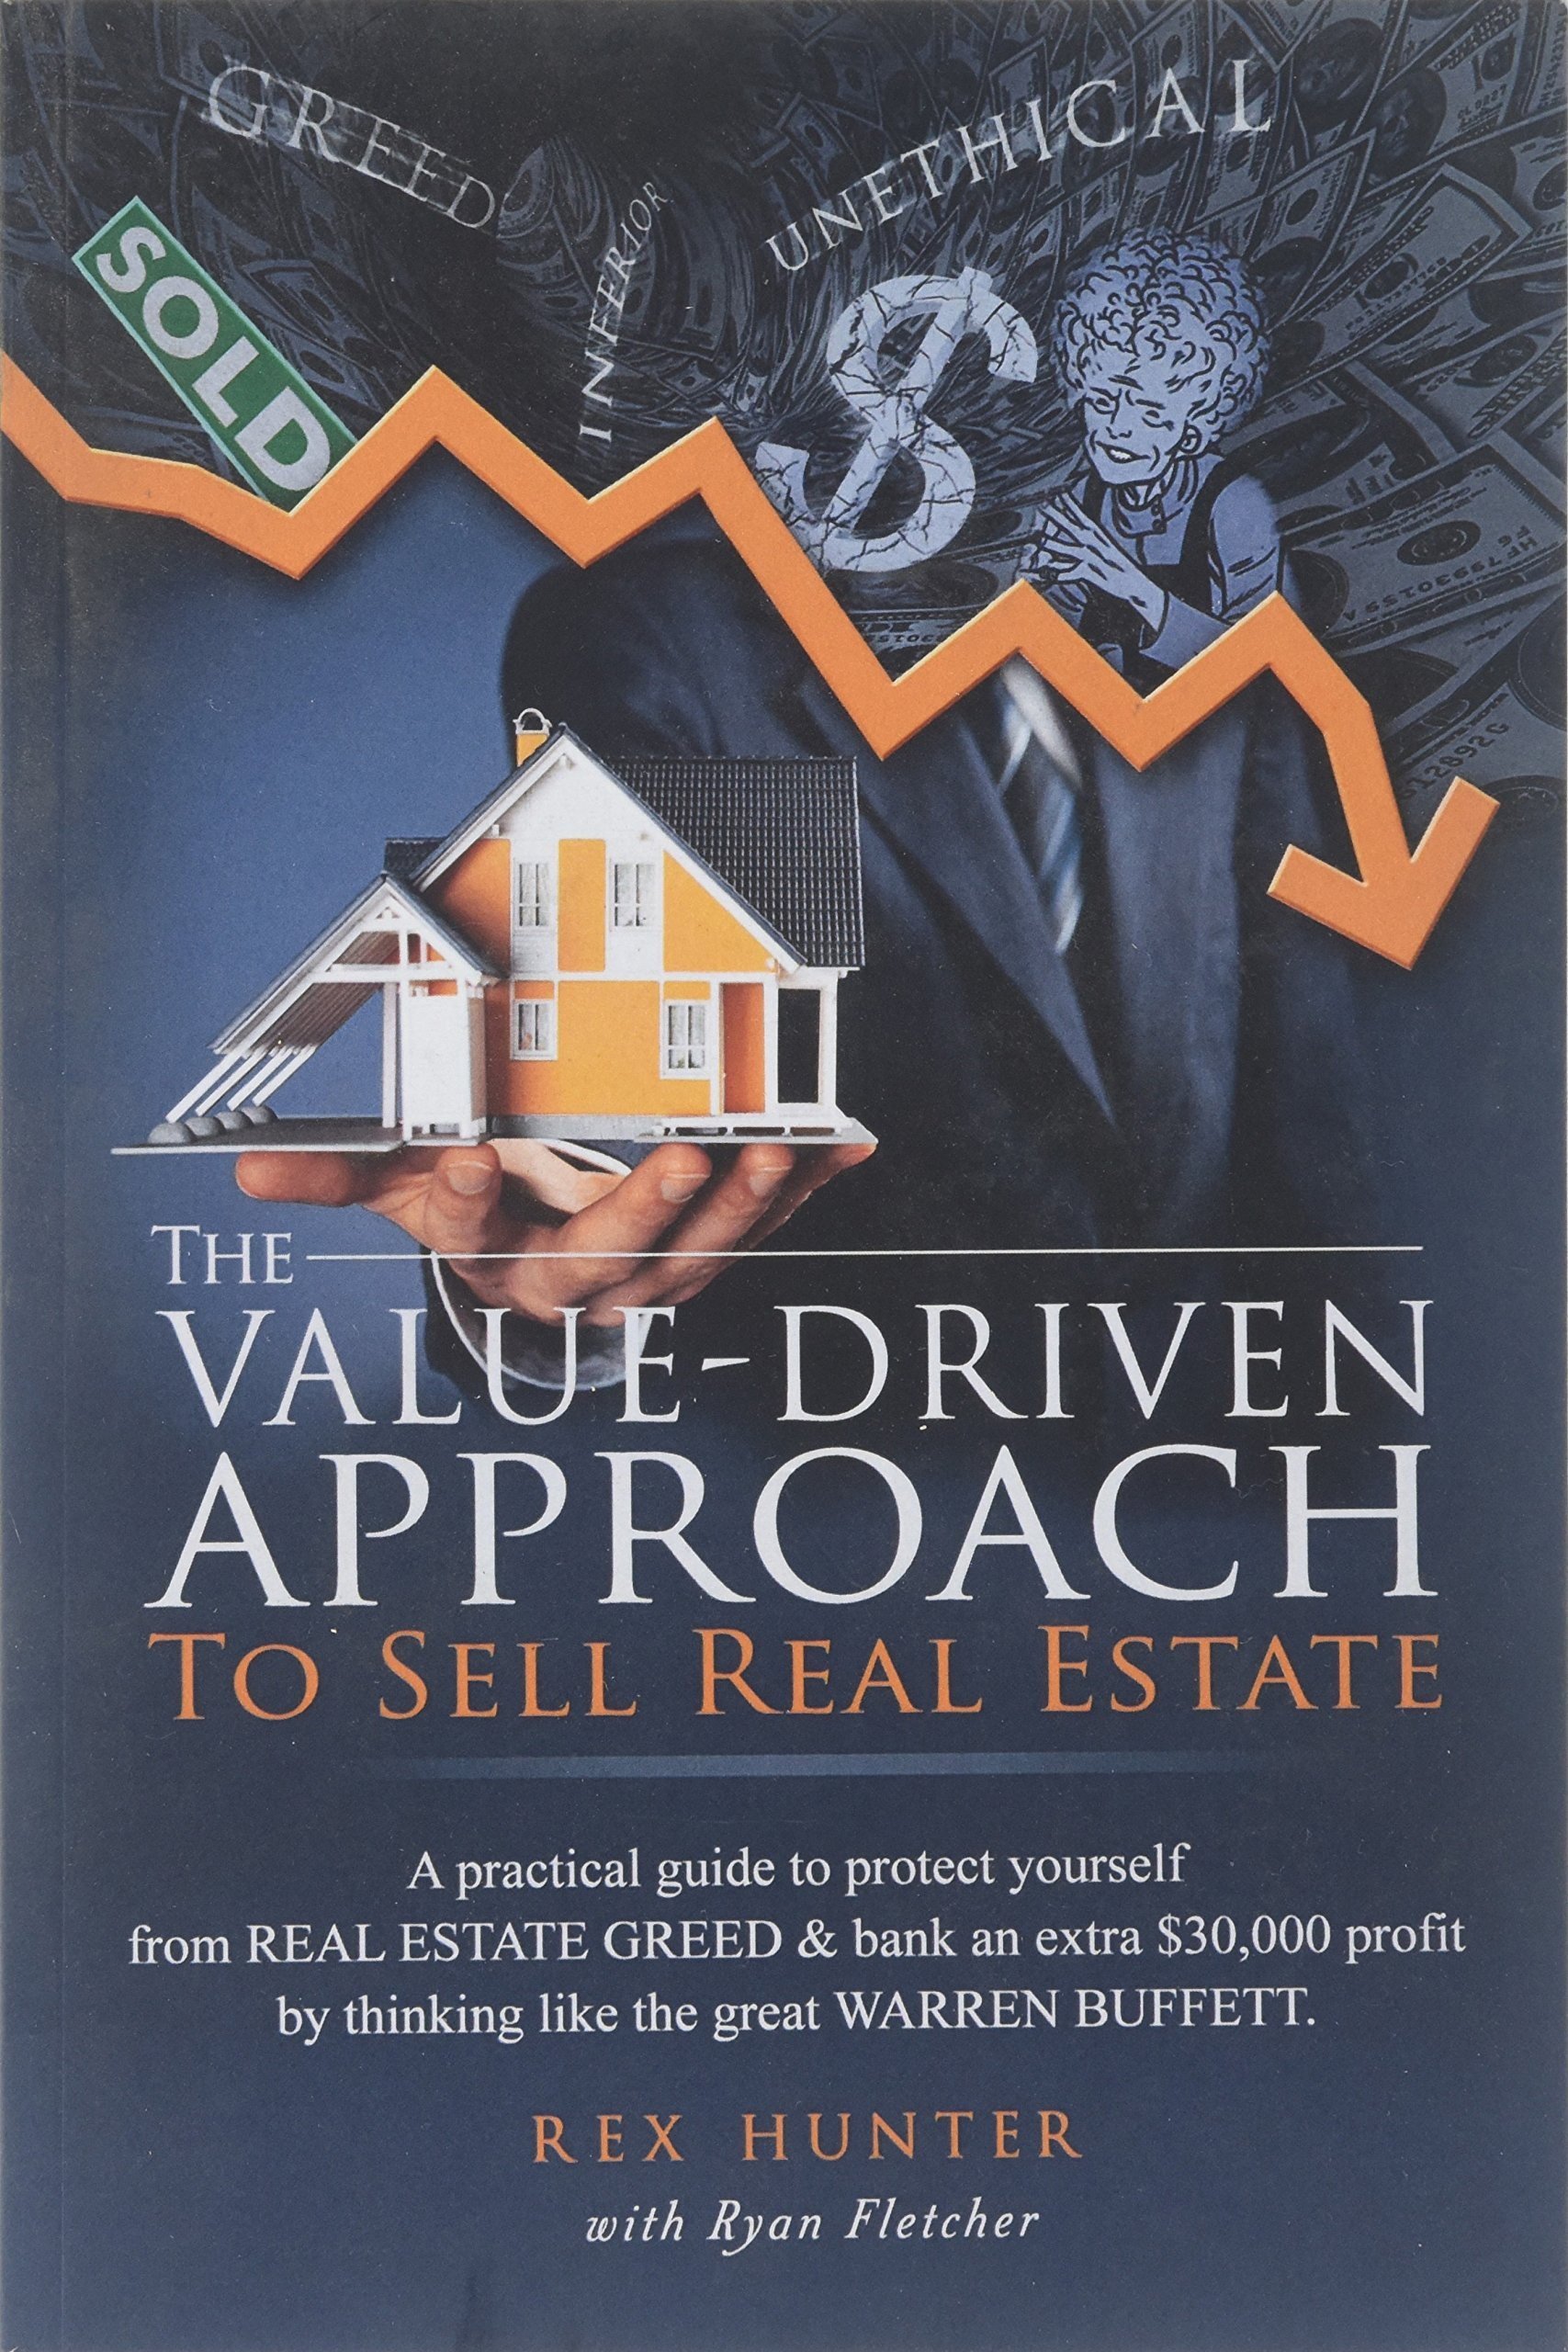 The Value-Driven Approach to Sell Real Estate pdf